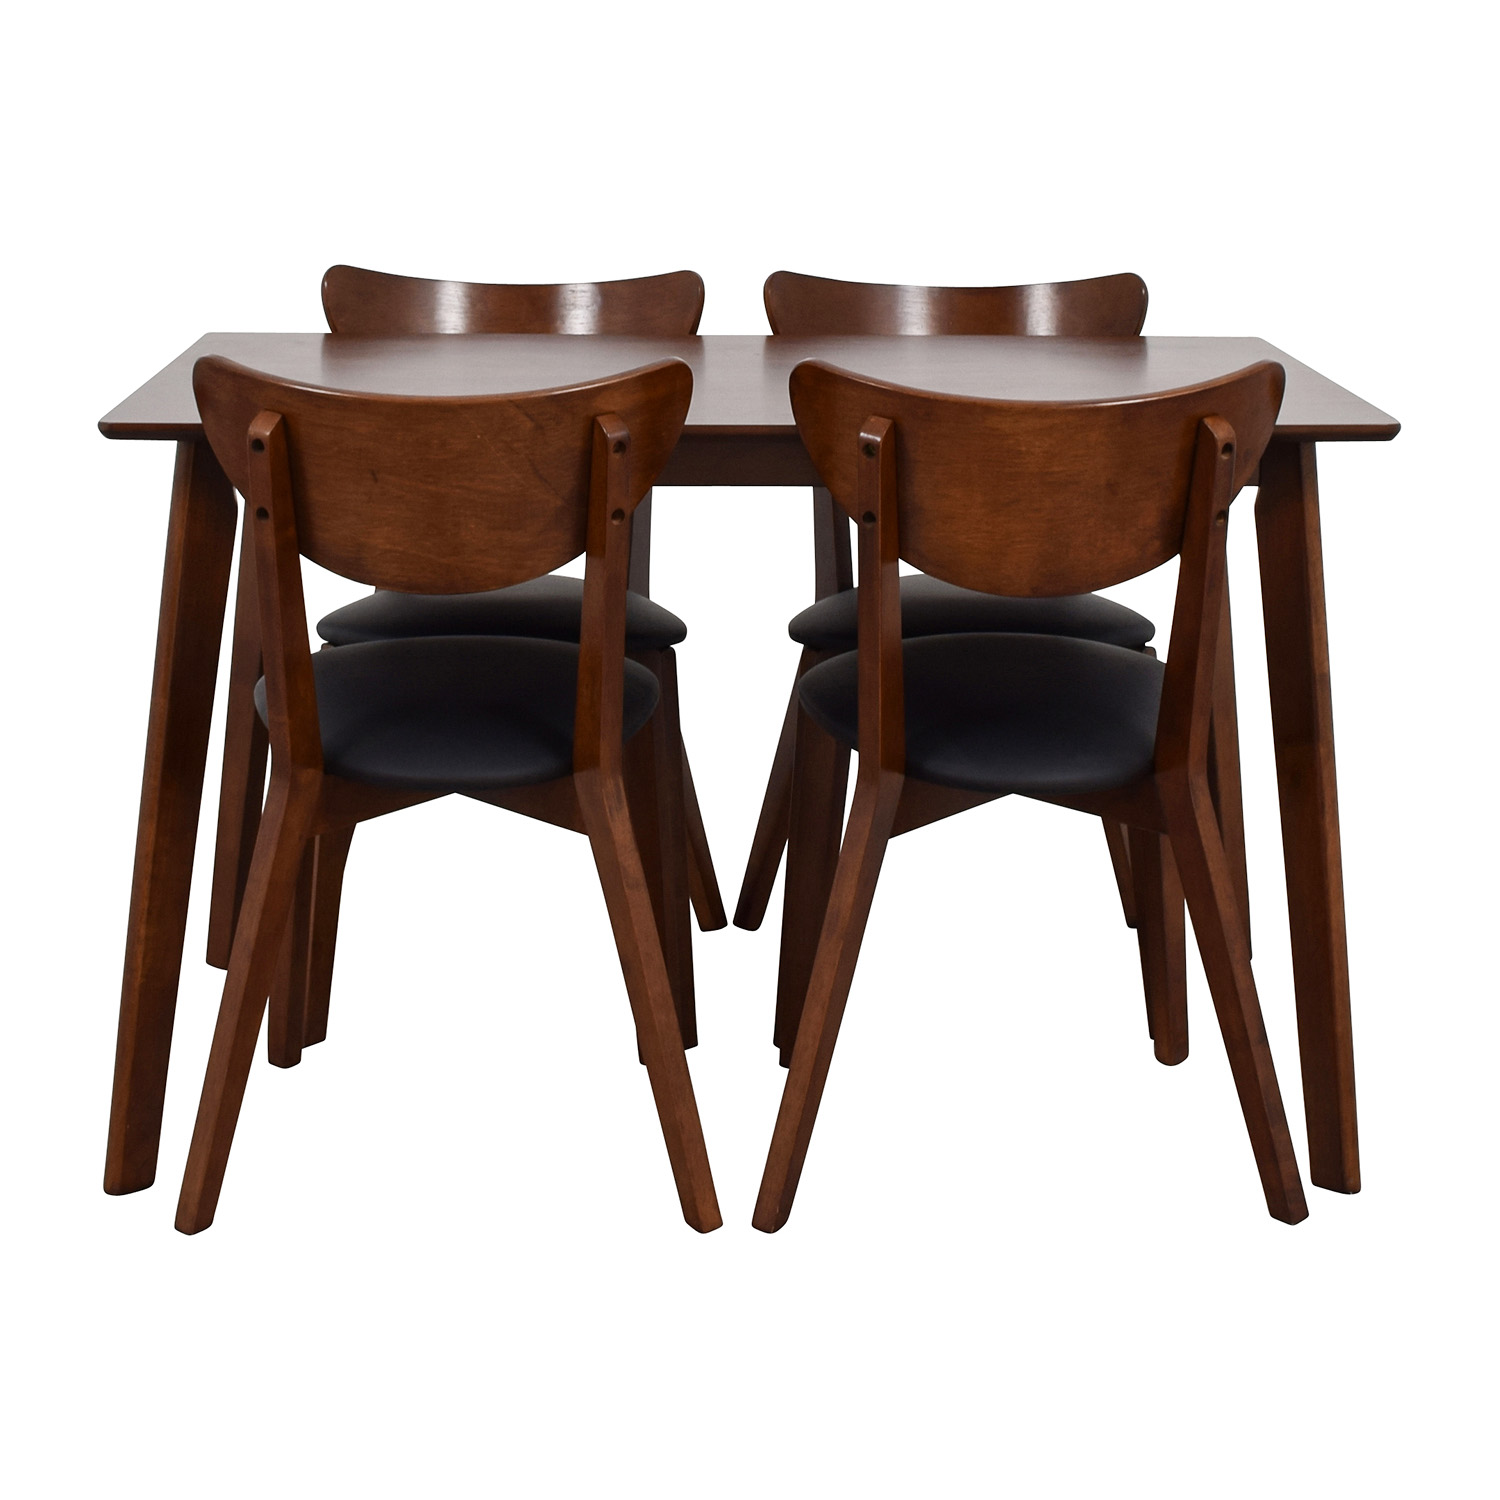 Wholesale Interiors Brown Dining Table Set with Four Chairs brown